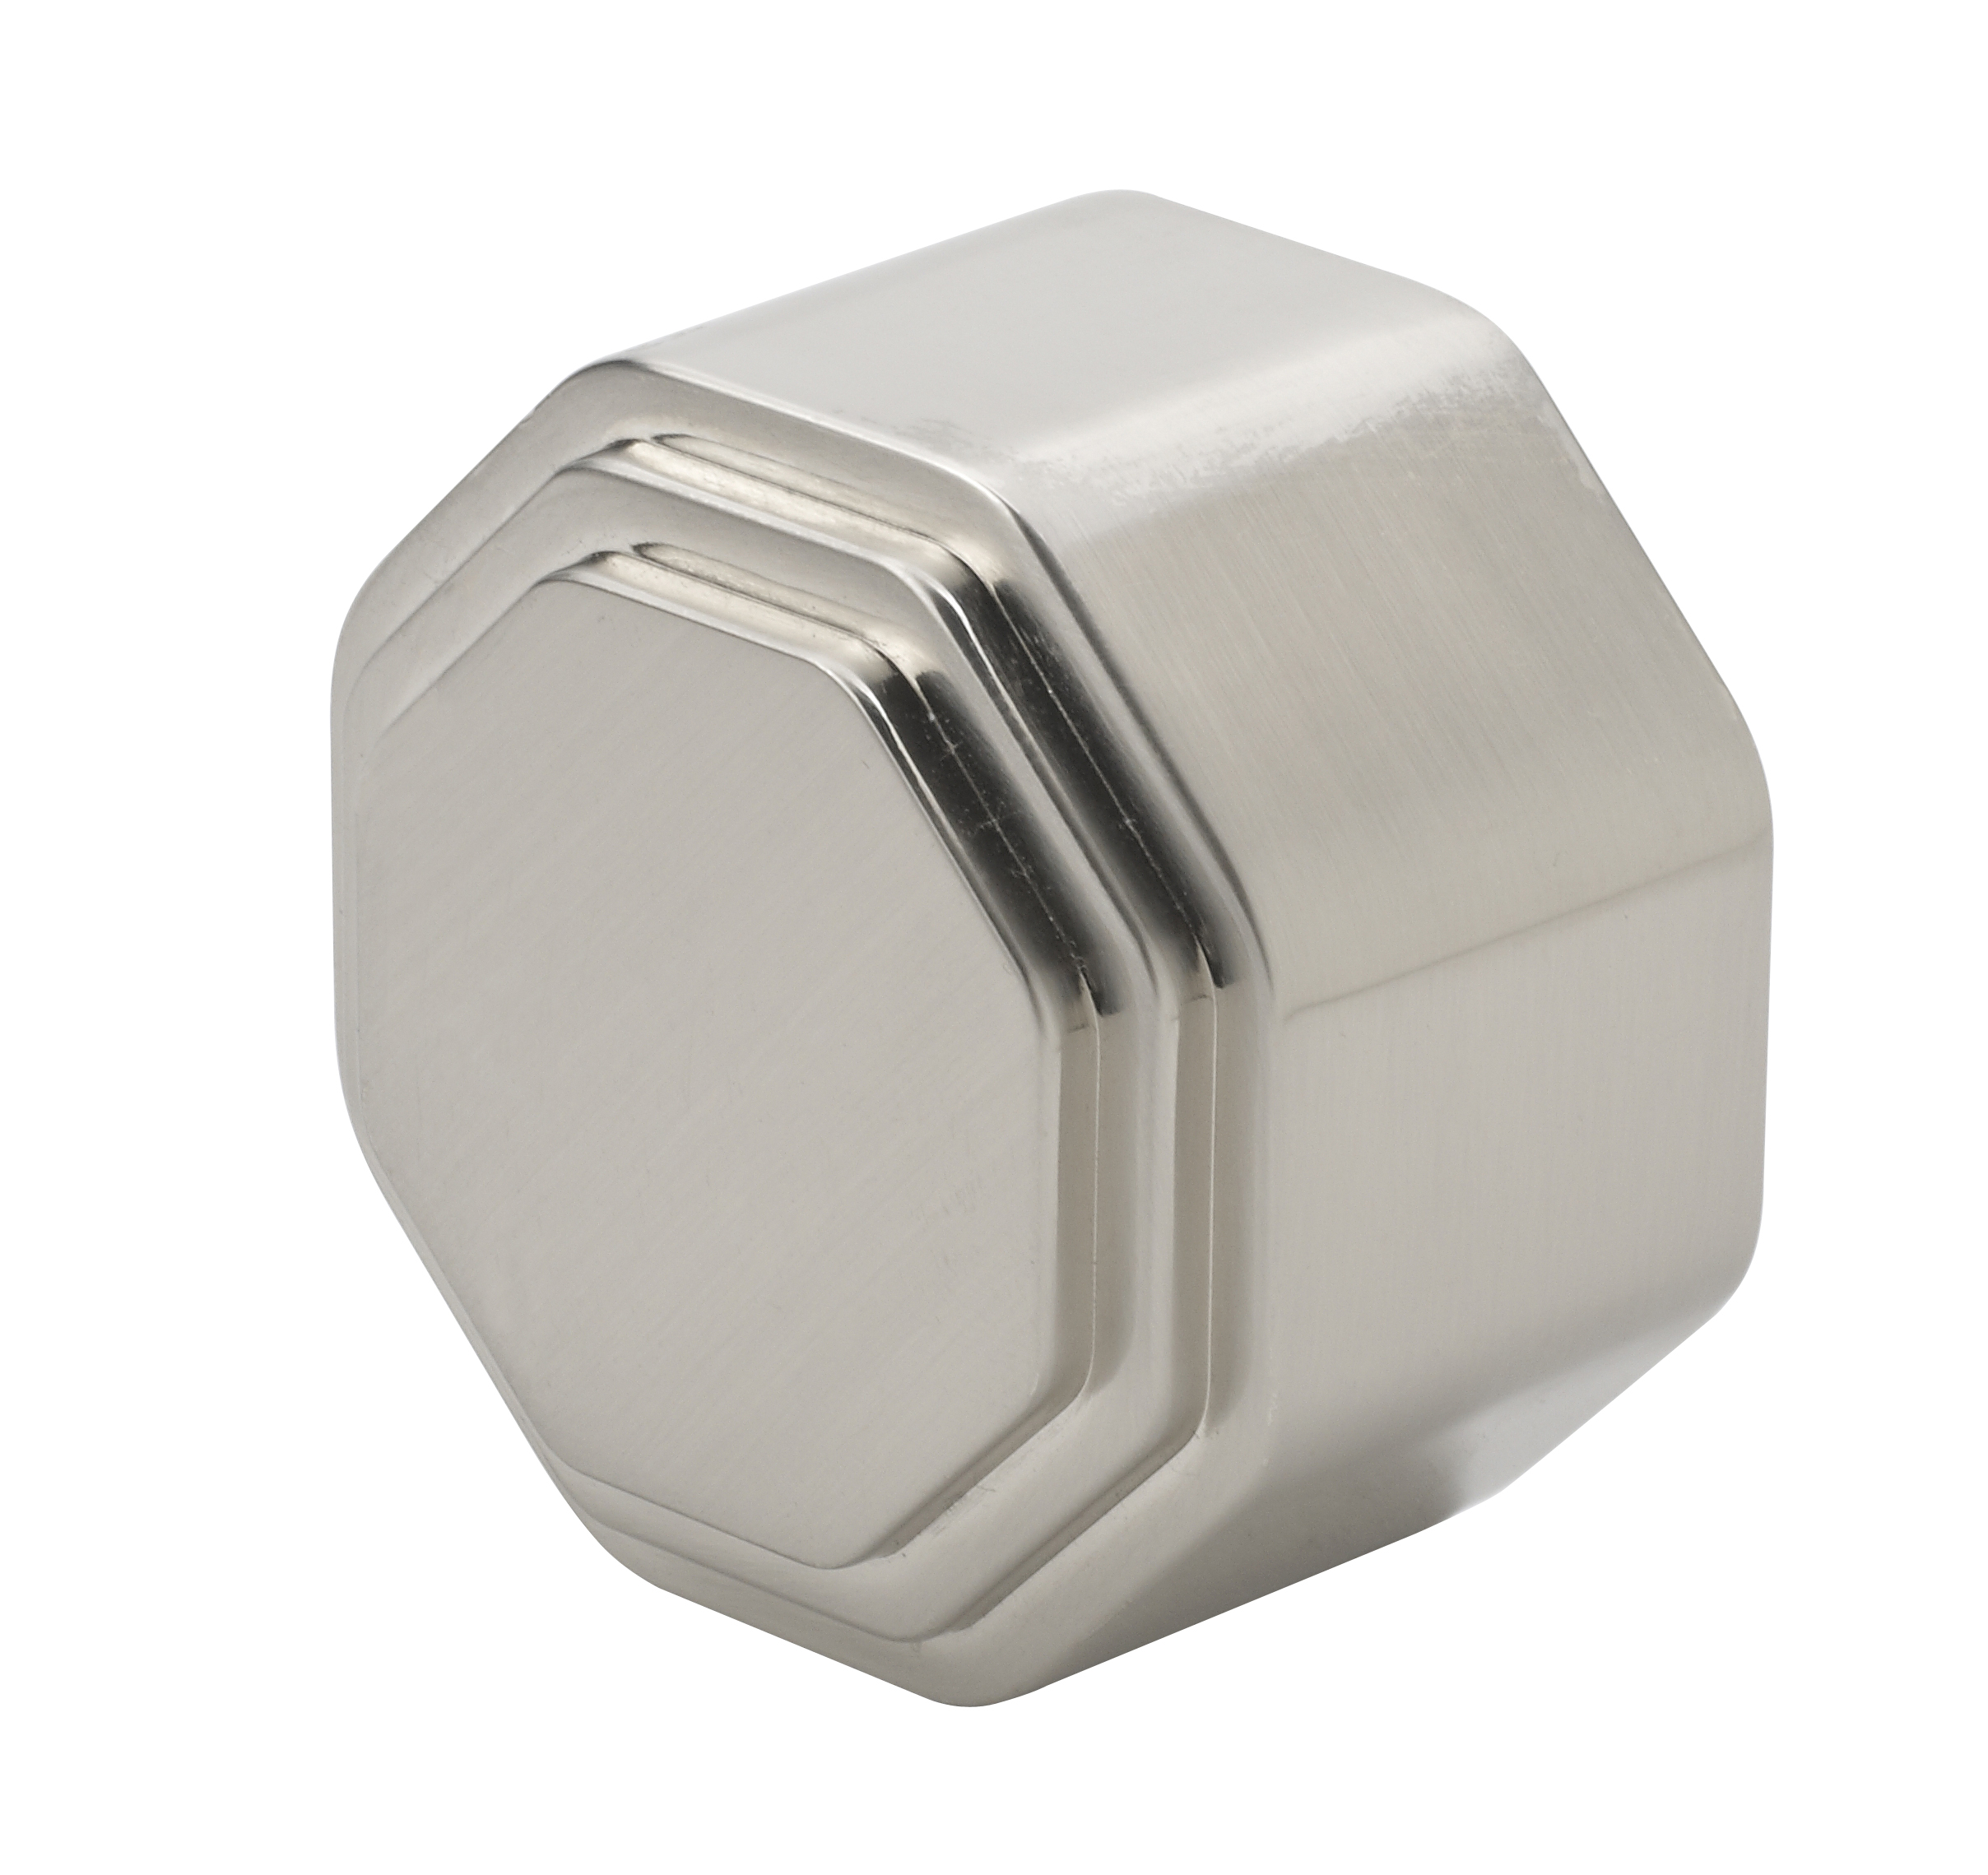 2 Octagonal Brushed Nickel End Cap